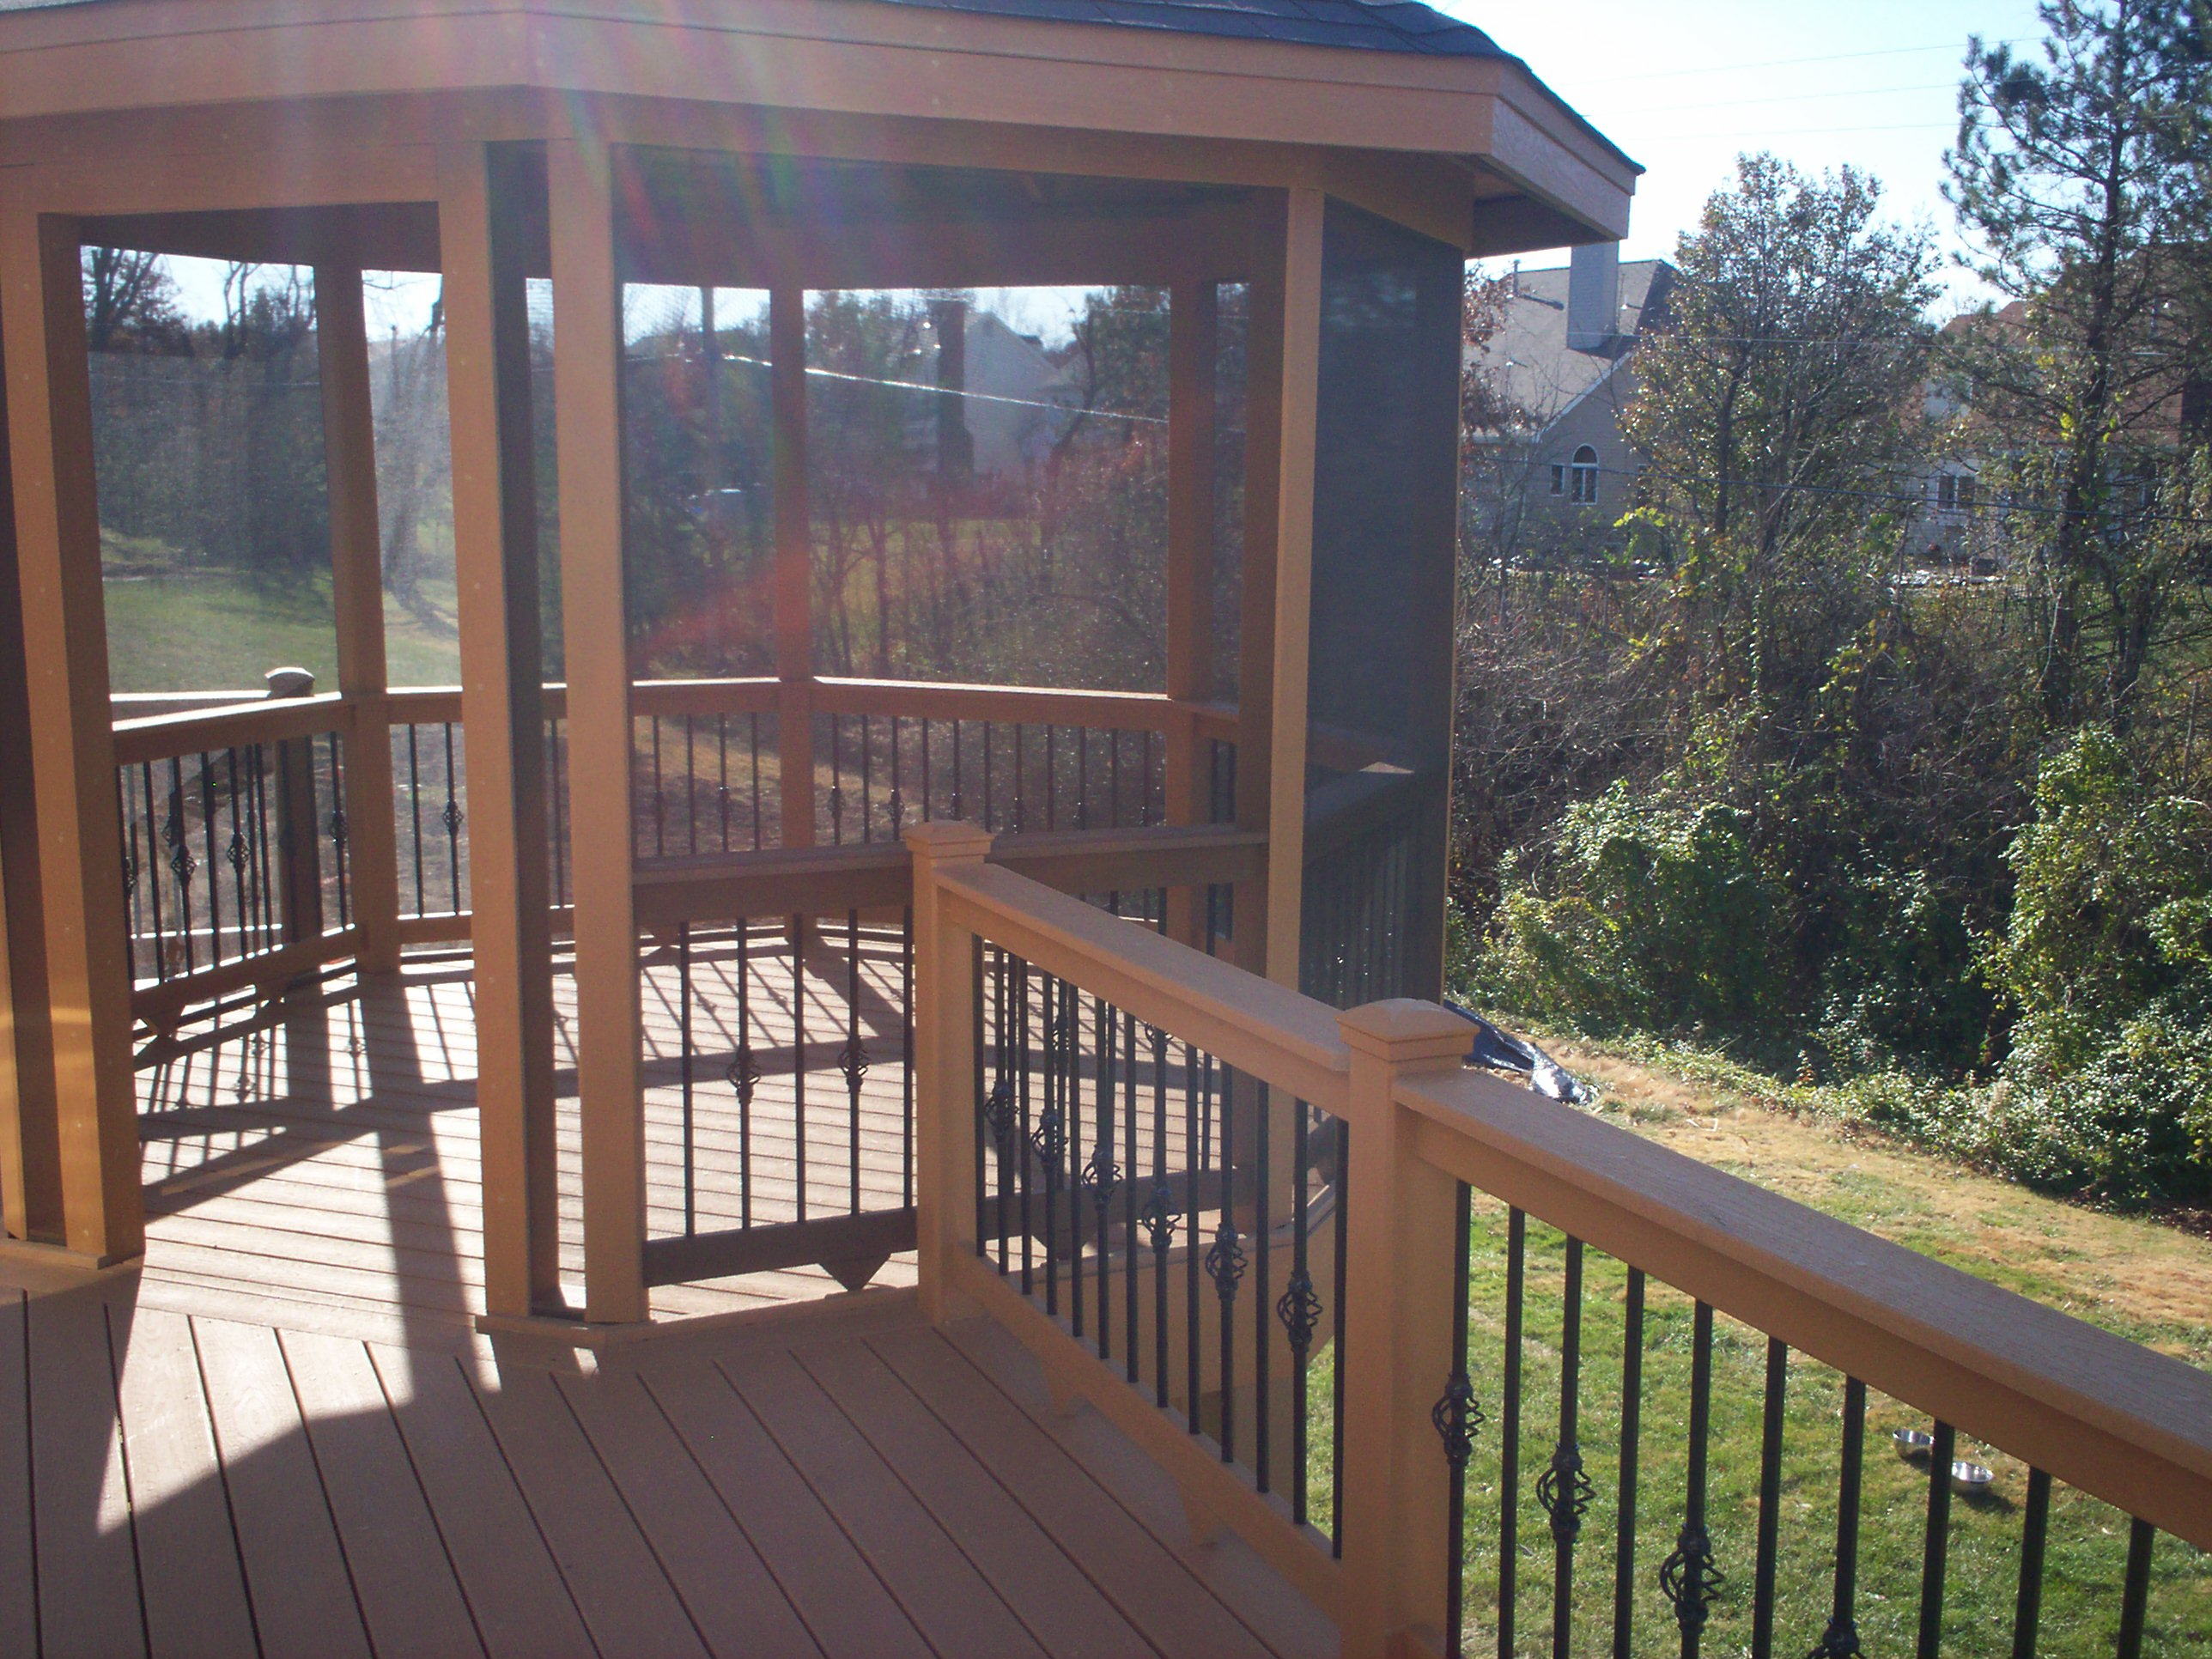 Screened In Decks : Gazebo design ideas by archadeck st louis decks